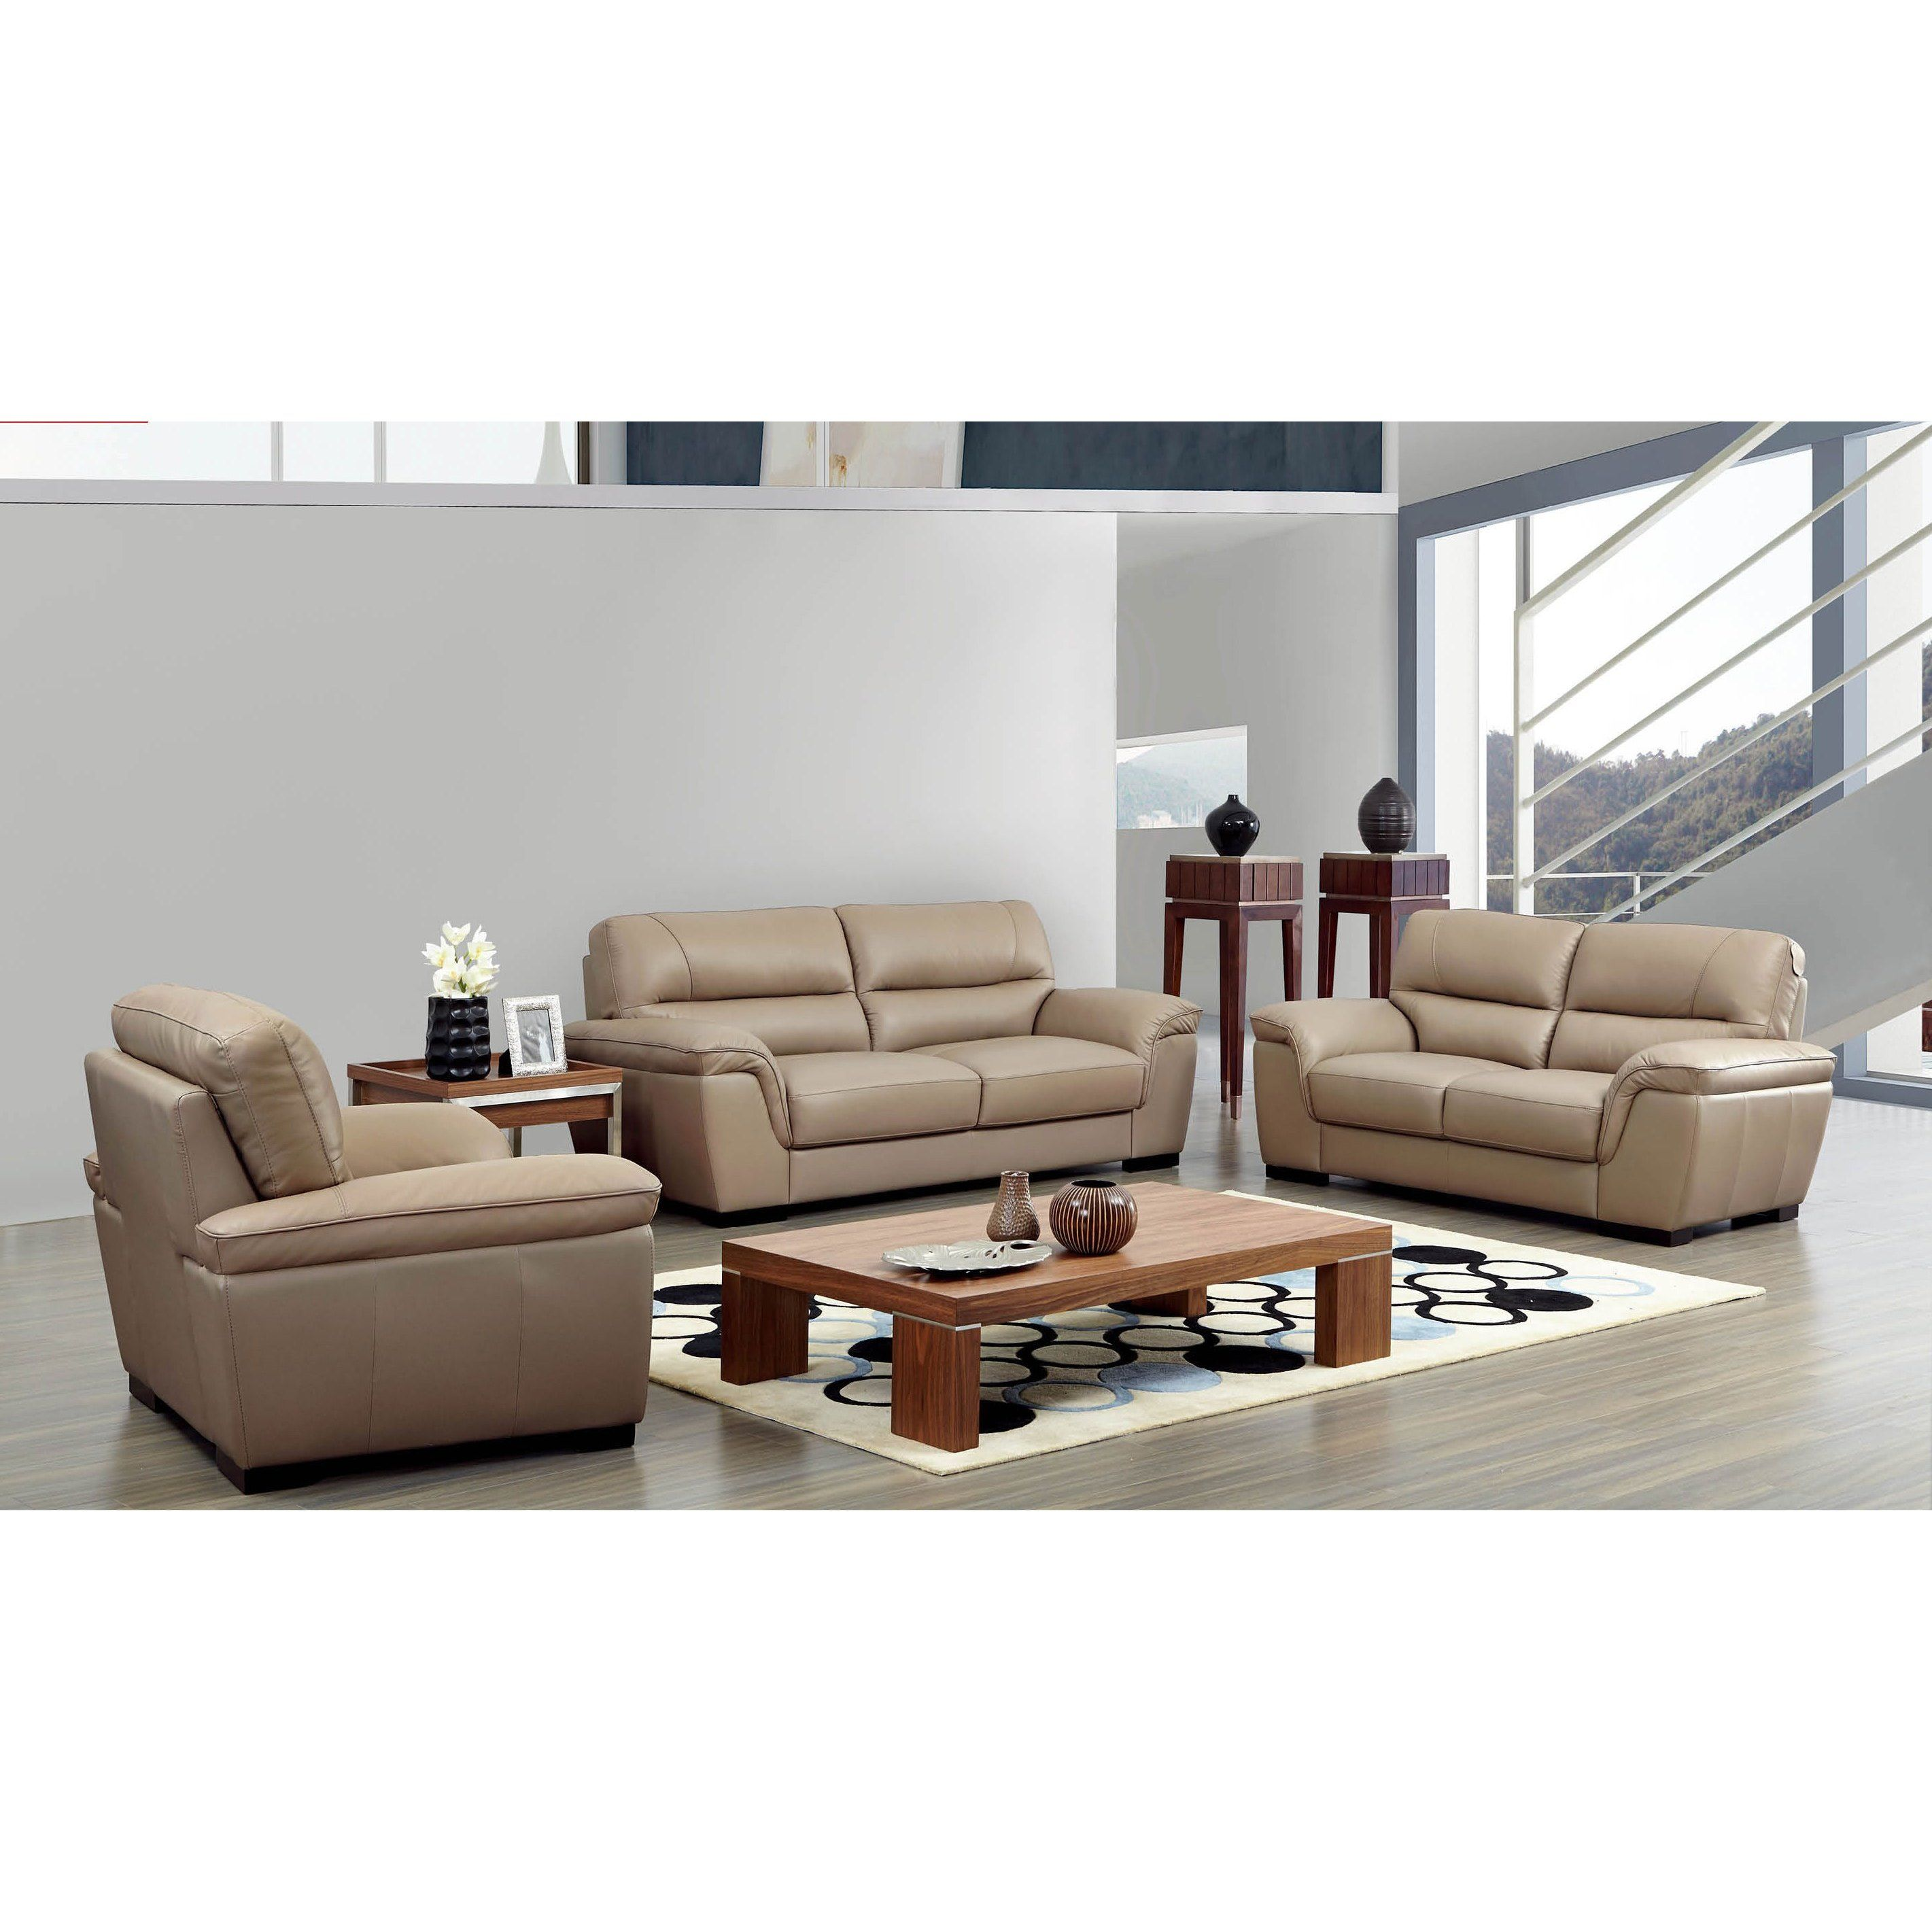 Prime Luca Home Contemporary Beige Sofa Loveseat And Chair Set Bralicious Painted Fabric Chair Ideas Braliciousco